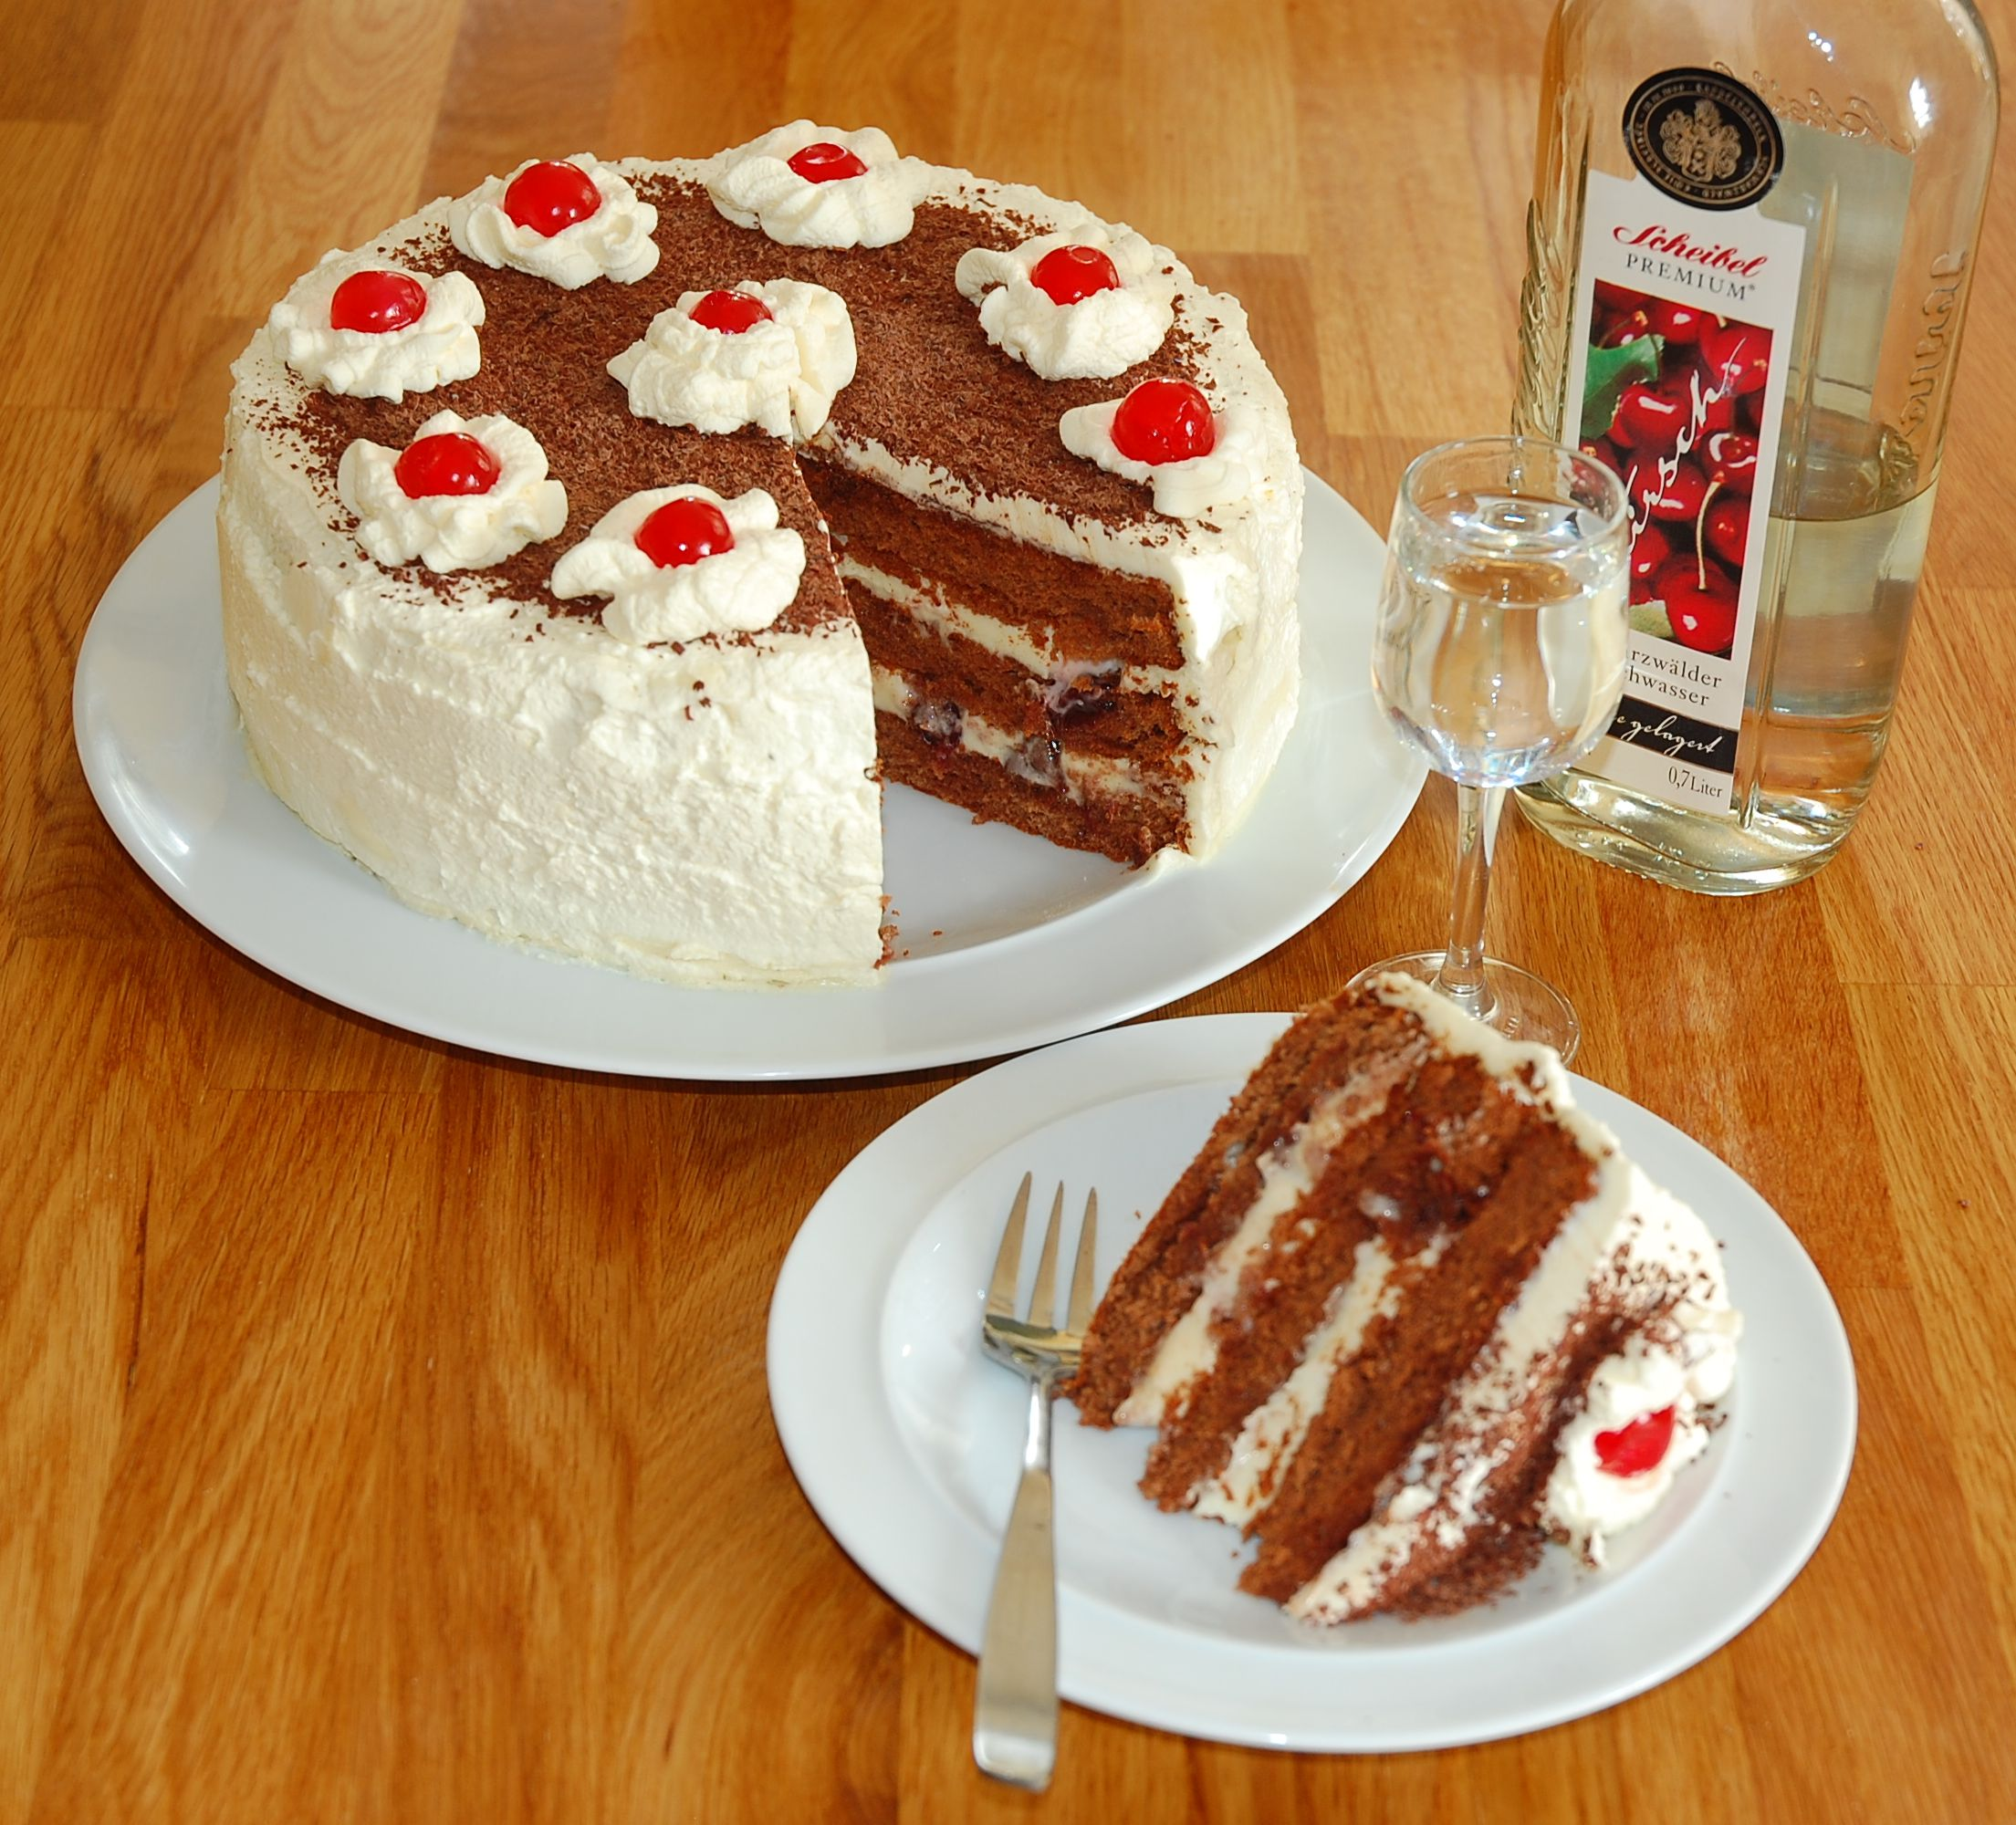 Schwarzwalder Kirschtorte or Black Forest (Cherry) Cake